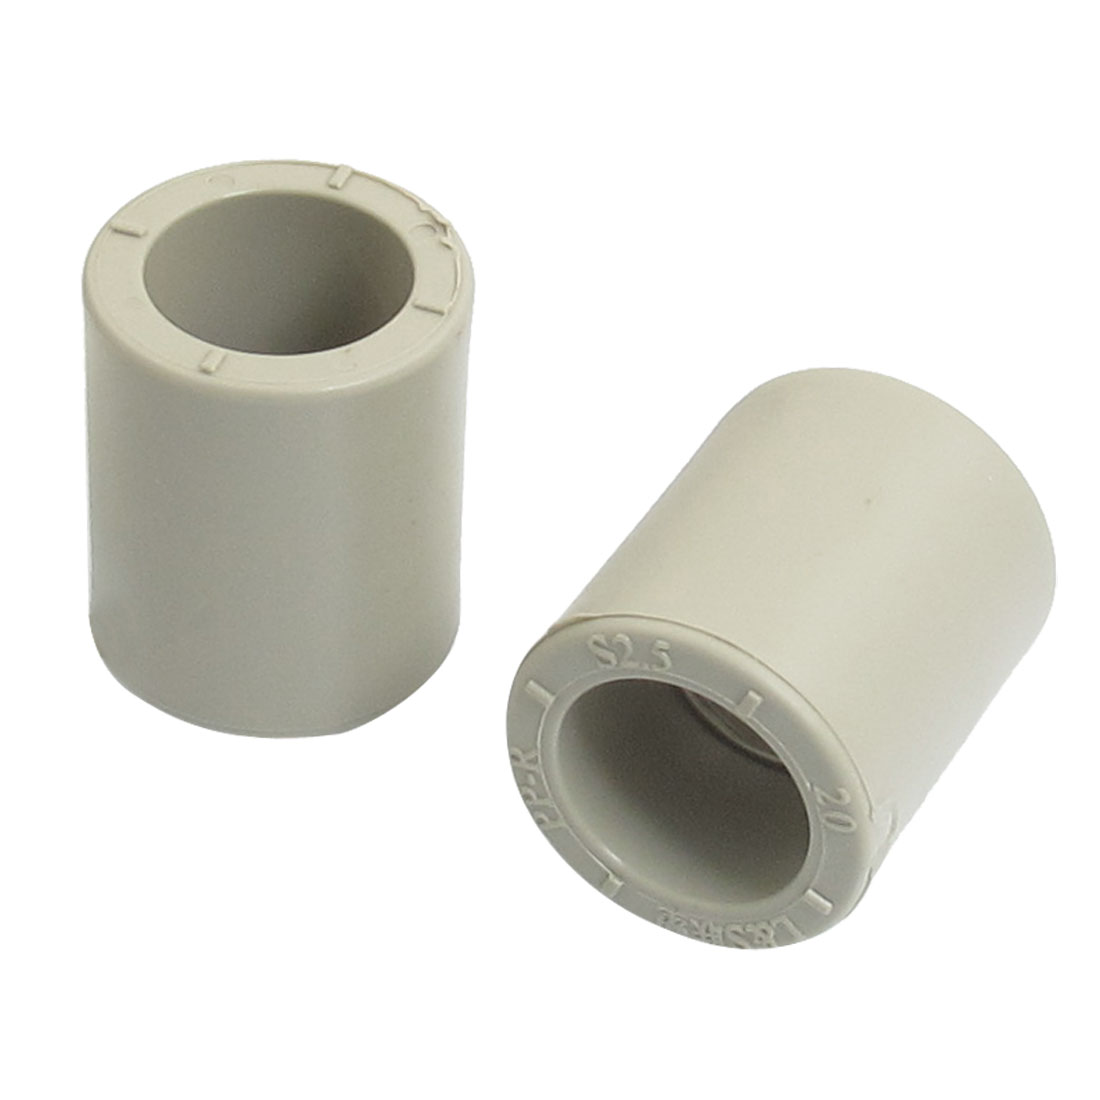 Gray PPR Tube Couplers Straight Pipe Connectors 20mm Diameter 5pcs